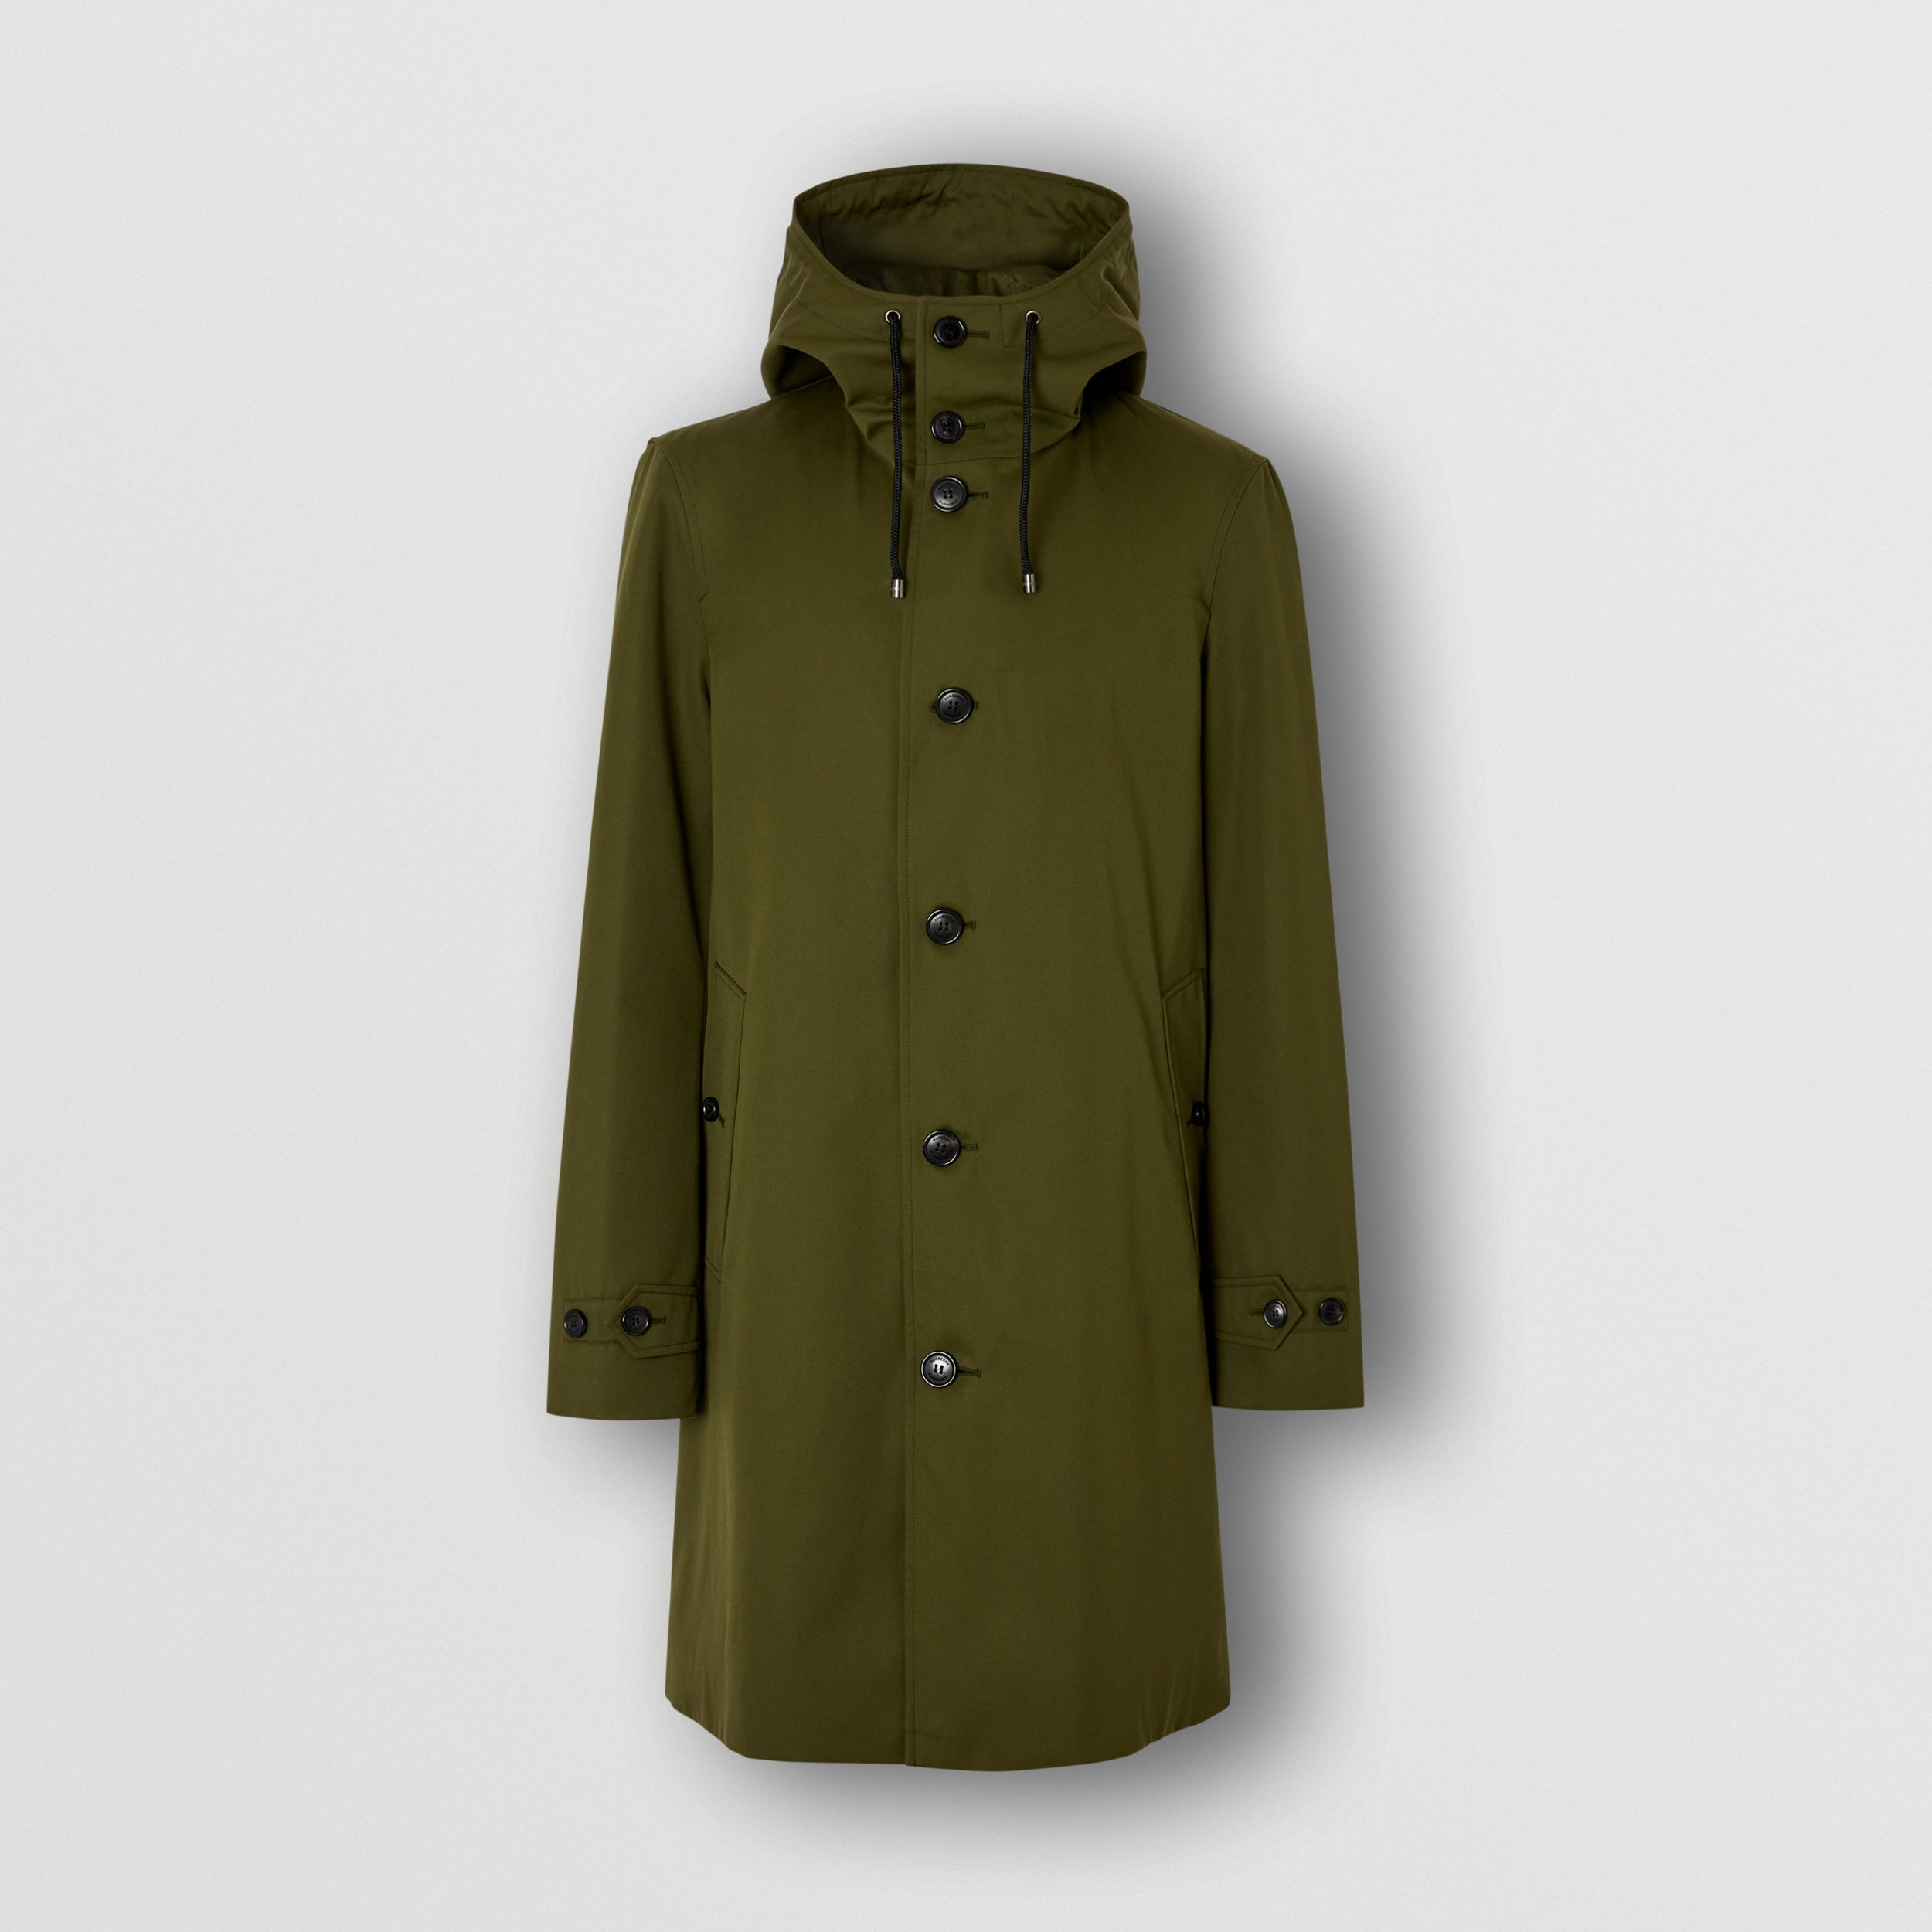 Cotton Gabardine Hooded Coat in Dark Olive Green - Men | Burberry - 4